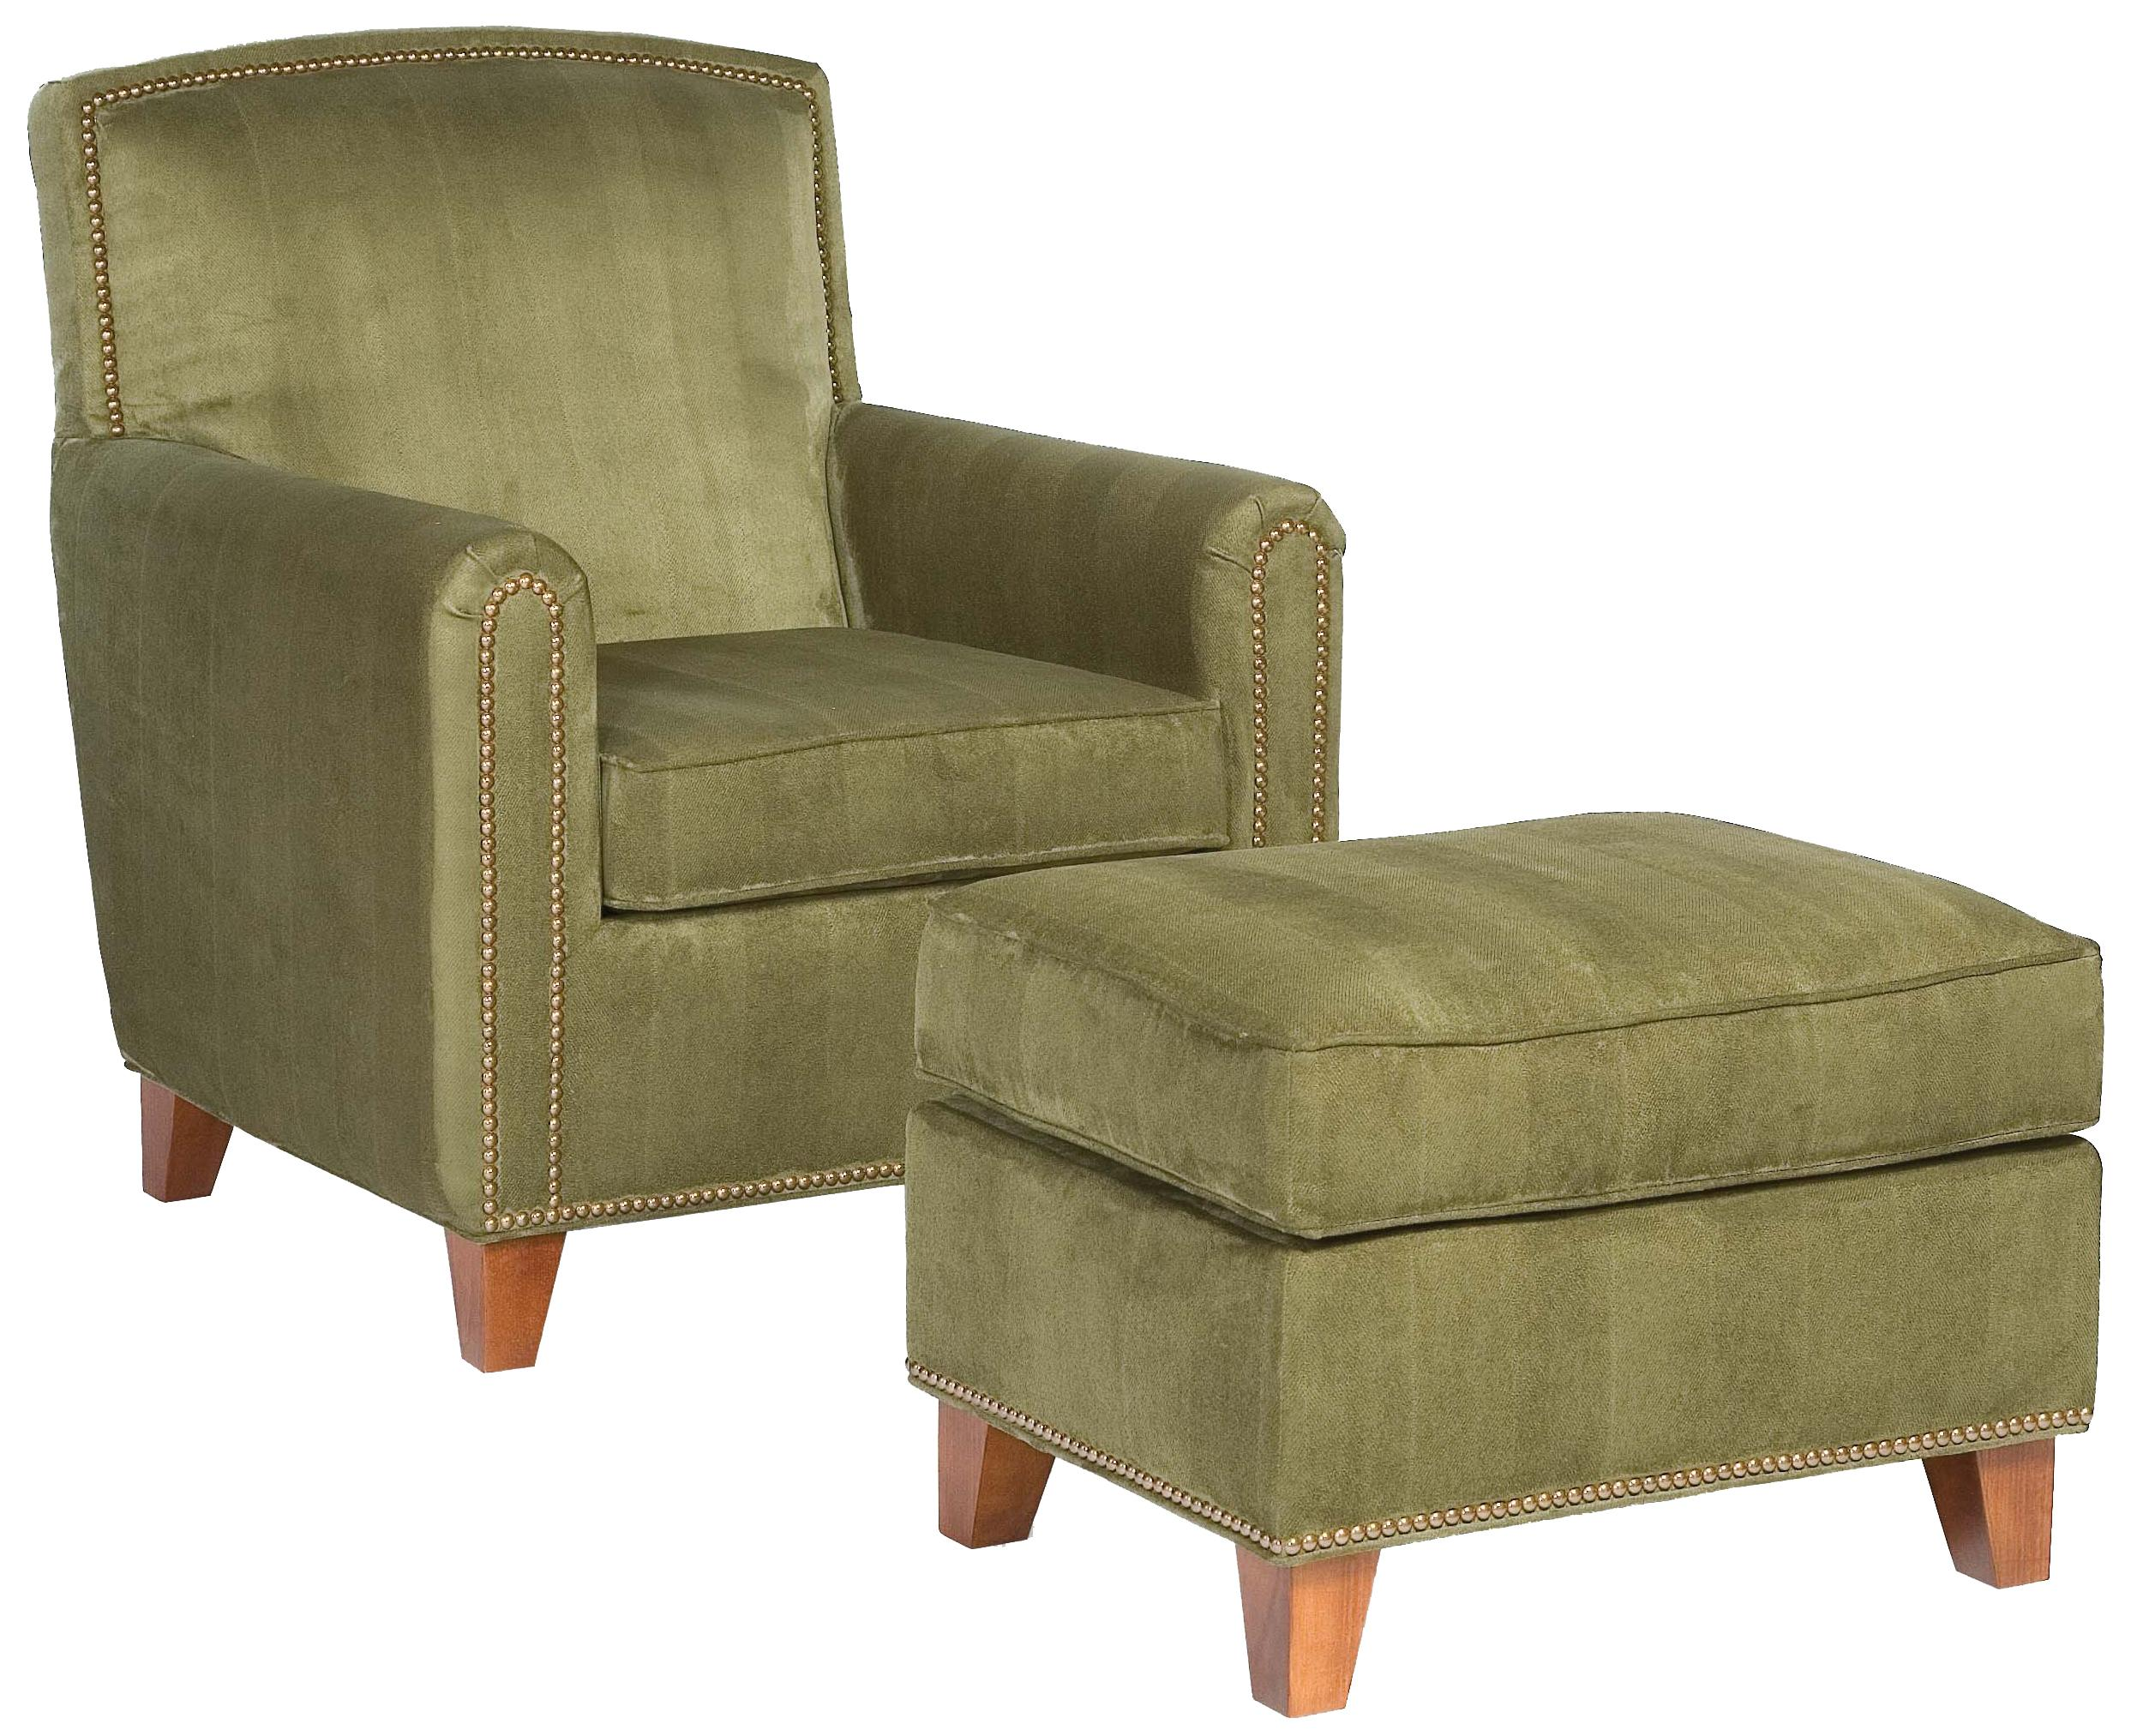 Fairfield Chairs Plush Chair & Ottoman Set - Item Number: 6026-01+20